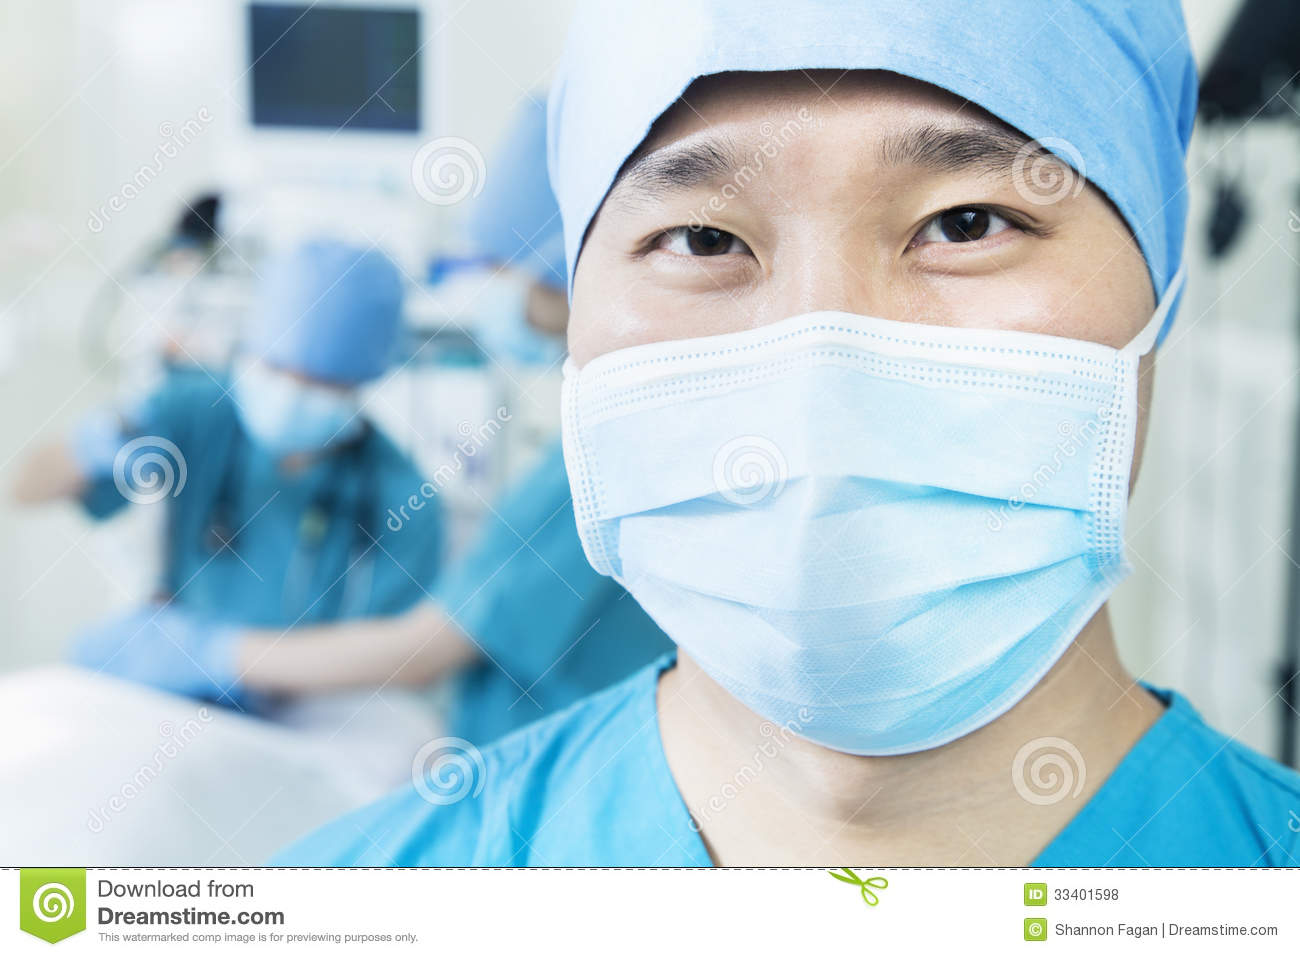 Operating Of In Portrait Surgical Surgeon Mask Room The Wearing